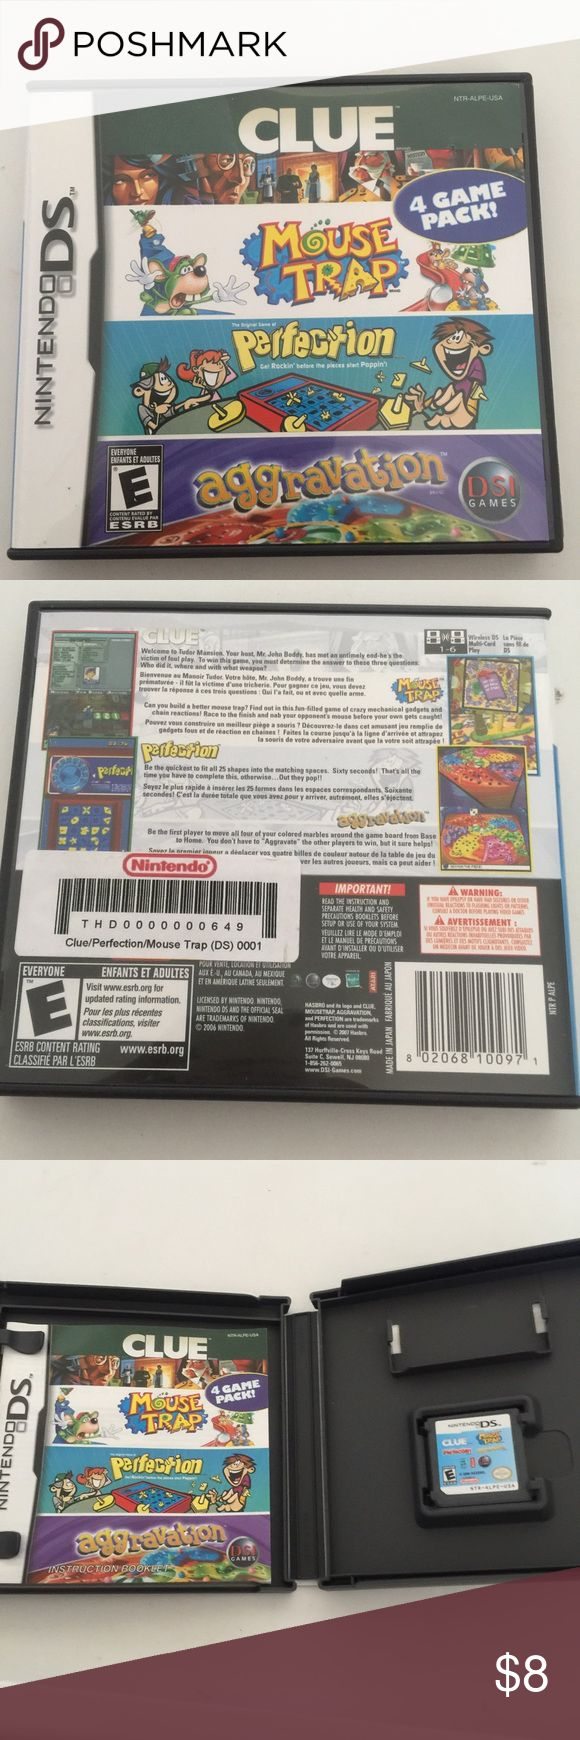 Nintendo DS 4 Games Pack Hello, this is a Nintendo DS 4 Game Pack. Clue,  Mouse Trap, Perfection, & Aggravation. In excellent condition. Final Price Other